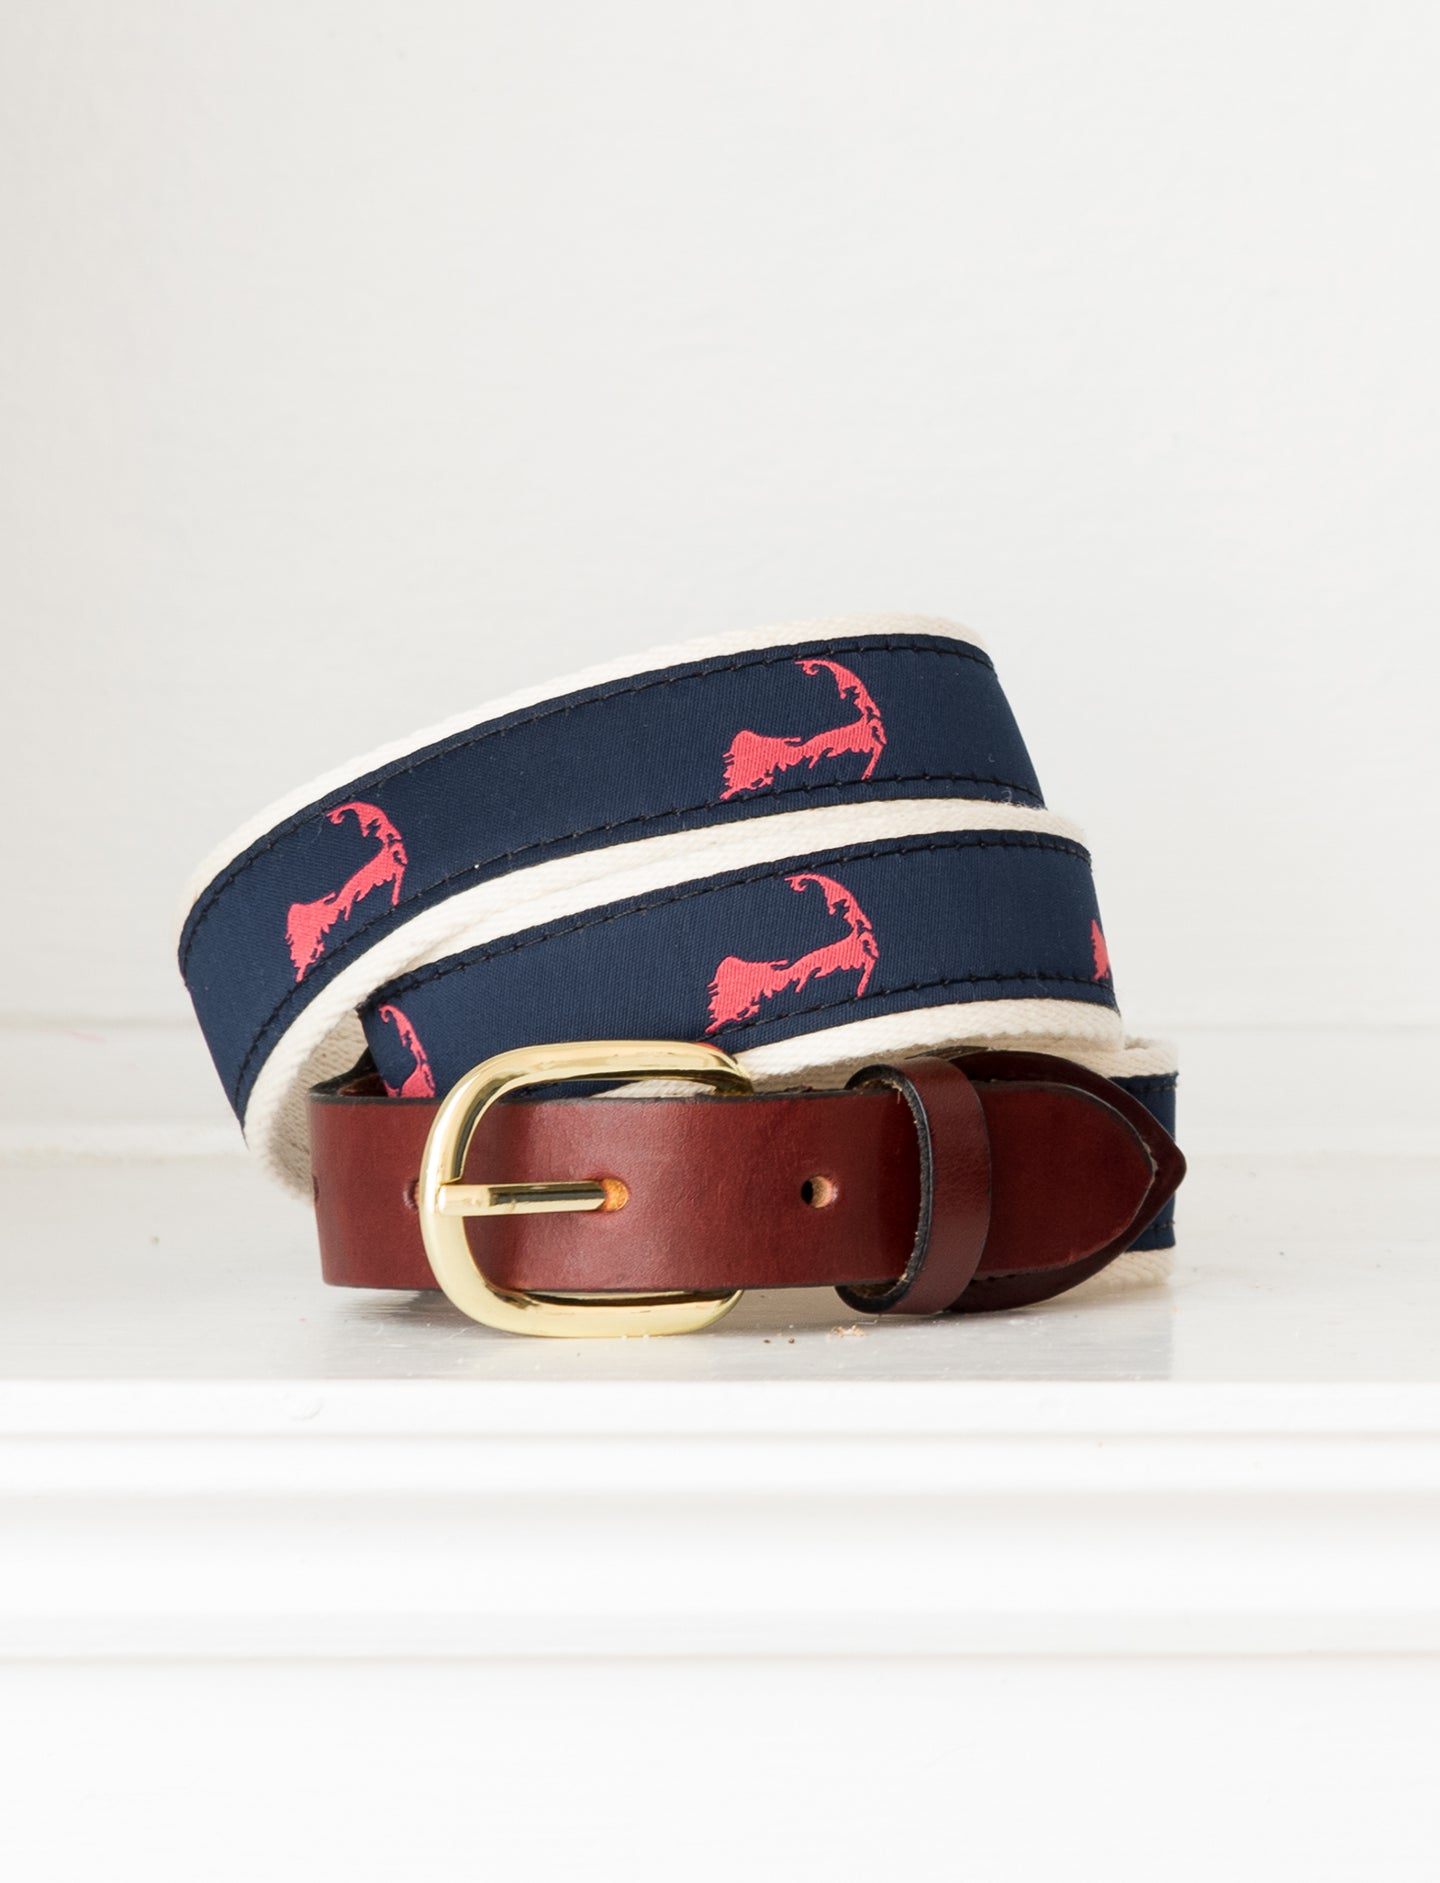 Cape Cod Map Belt: Red